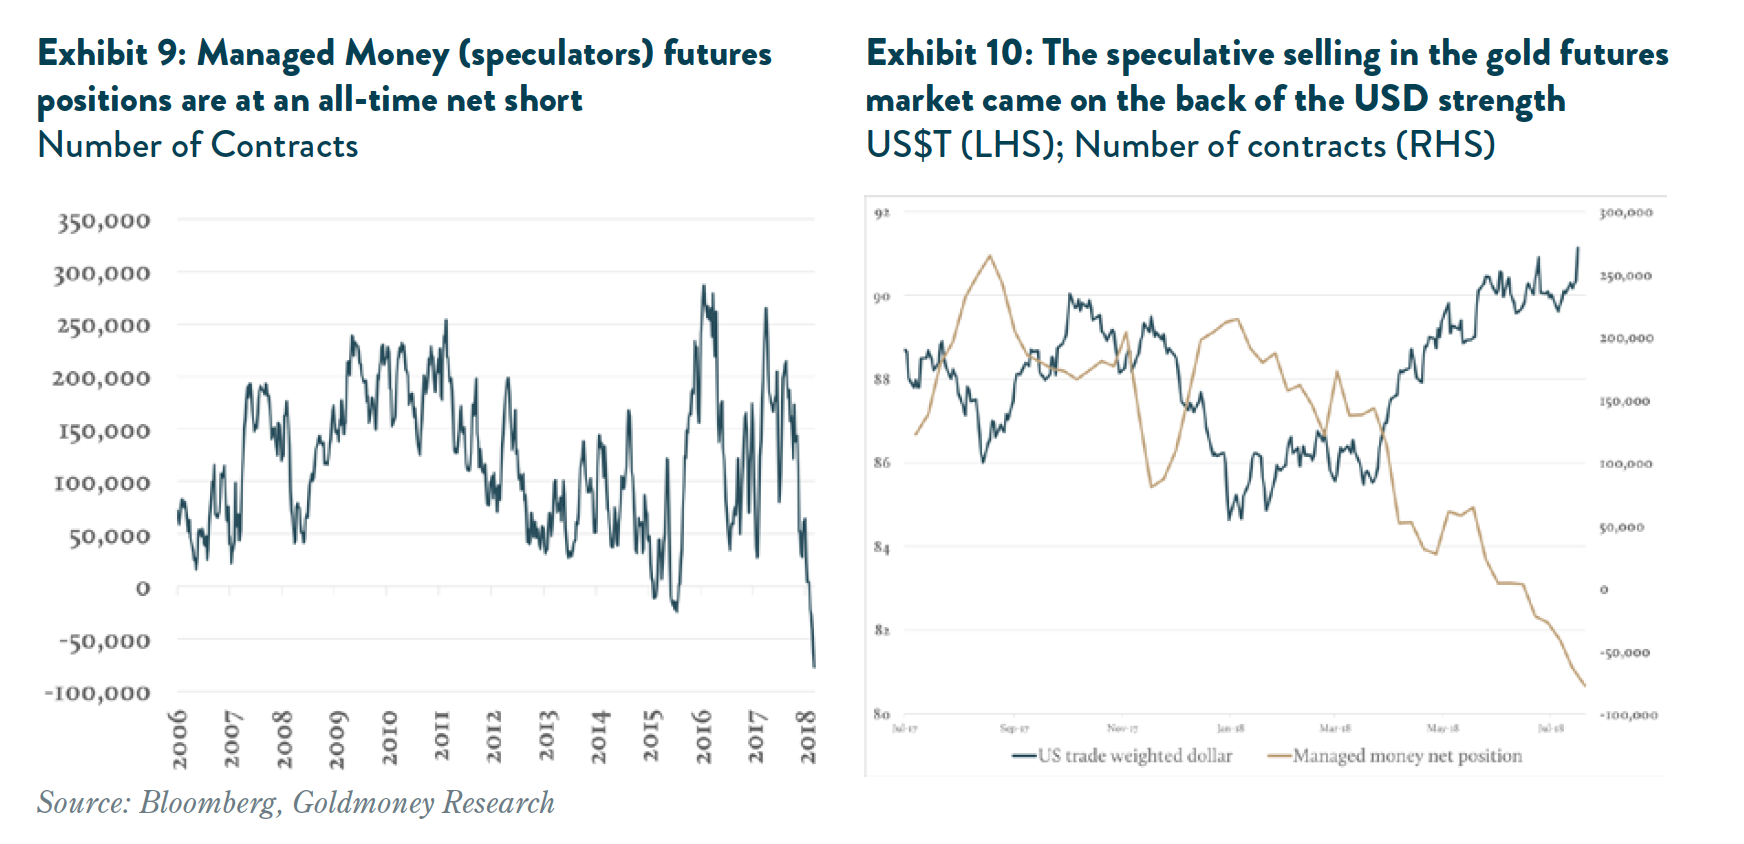 Managed Money futures positions net short